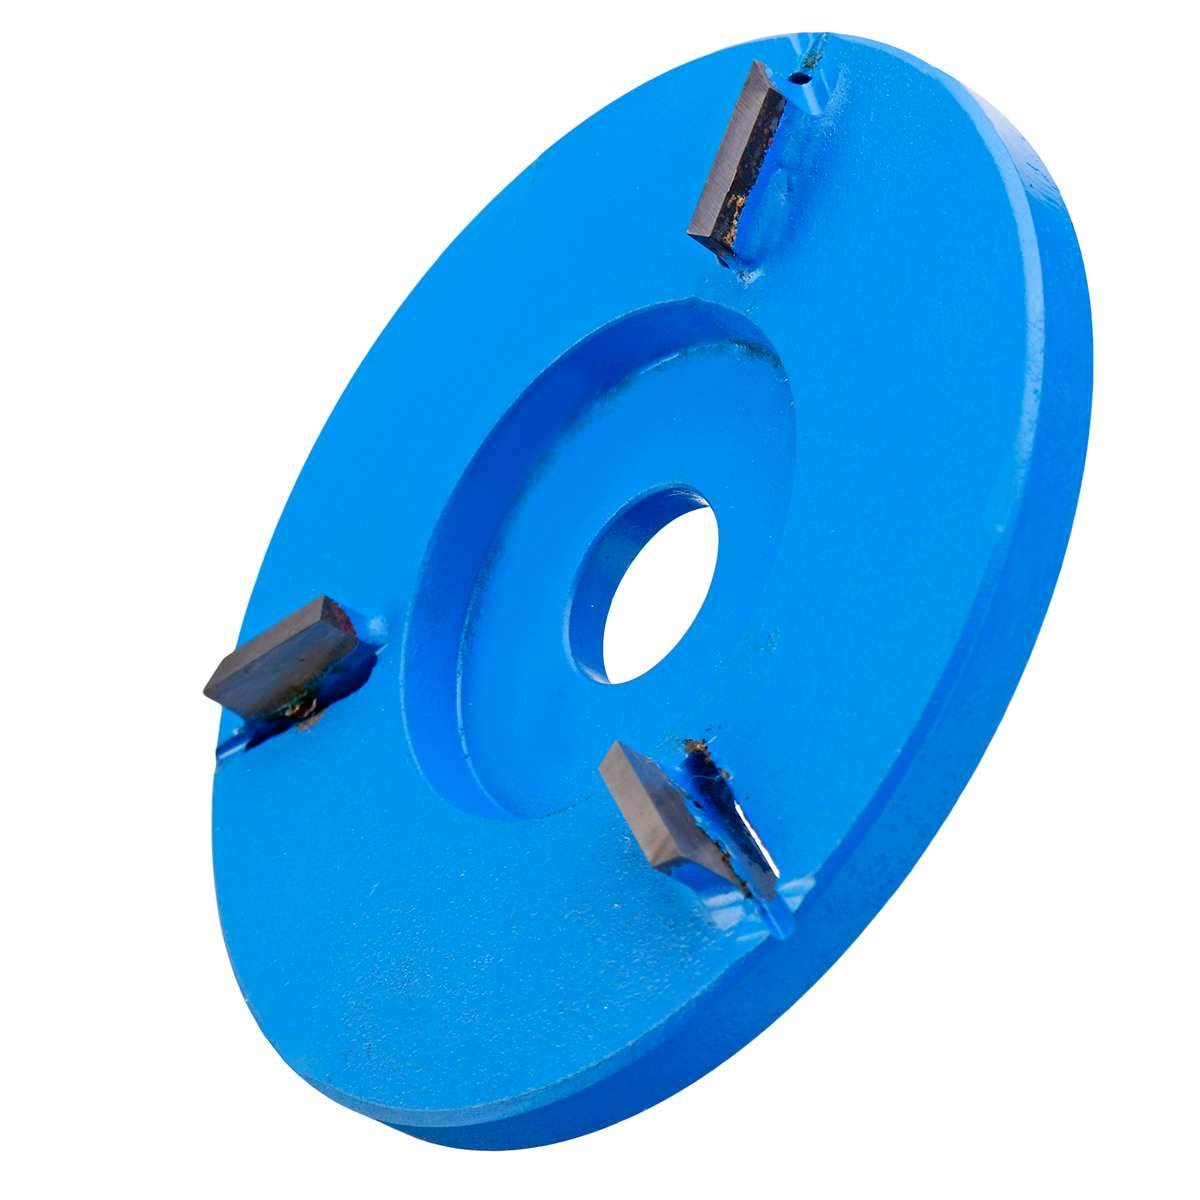 SODIAL Woodworking Turbo Plane Wood Carving Blade Suitable For 16Mm Angle Angle Grinder Blue grinding plane